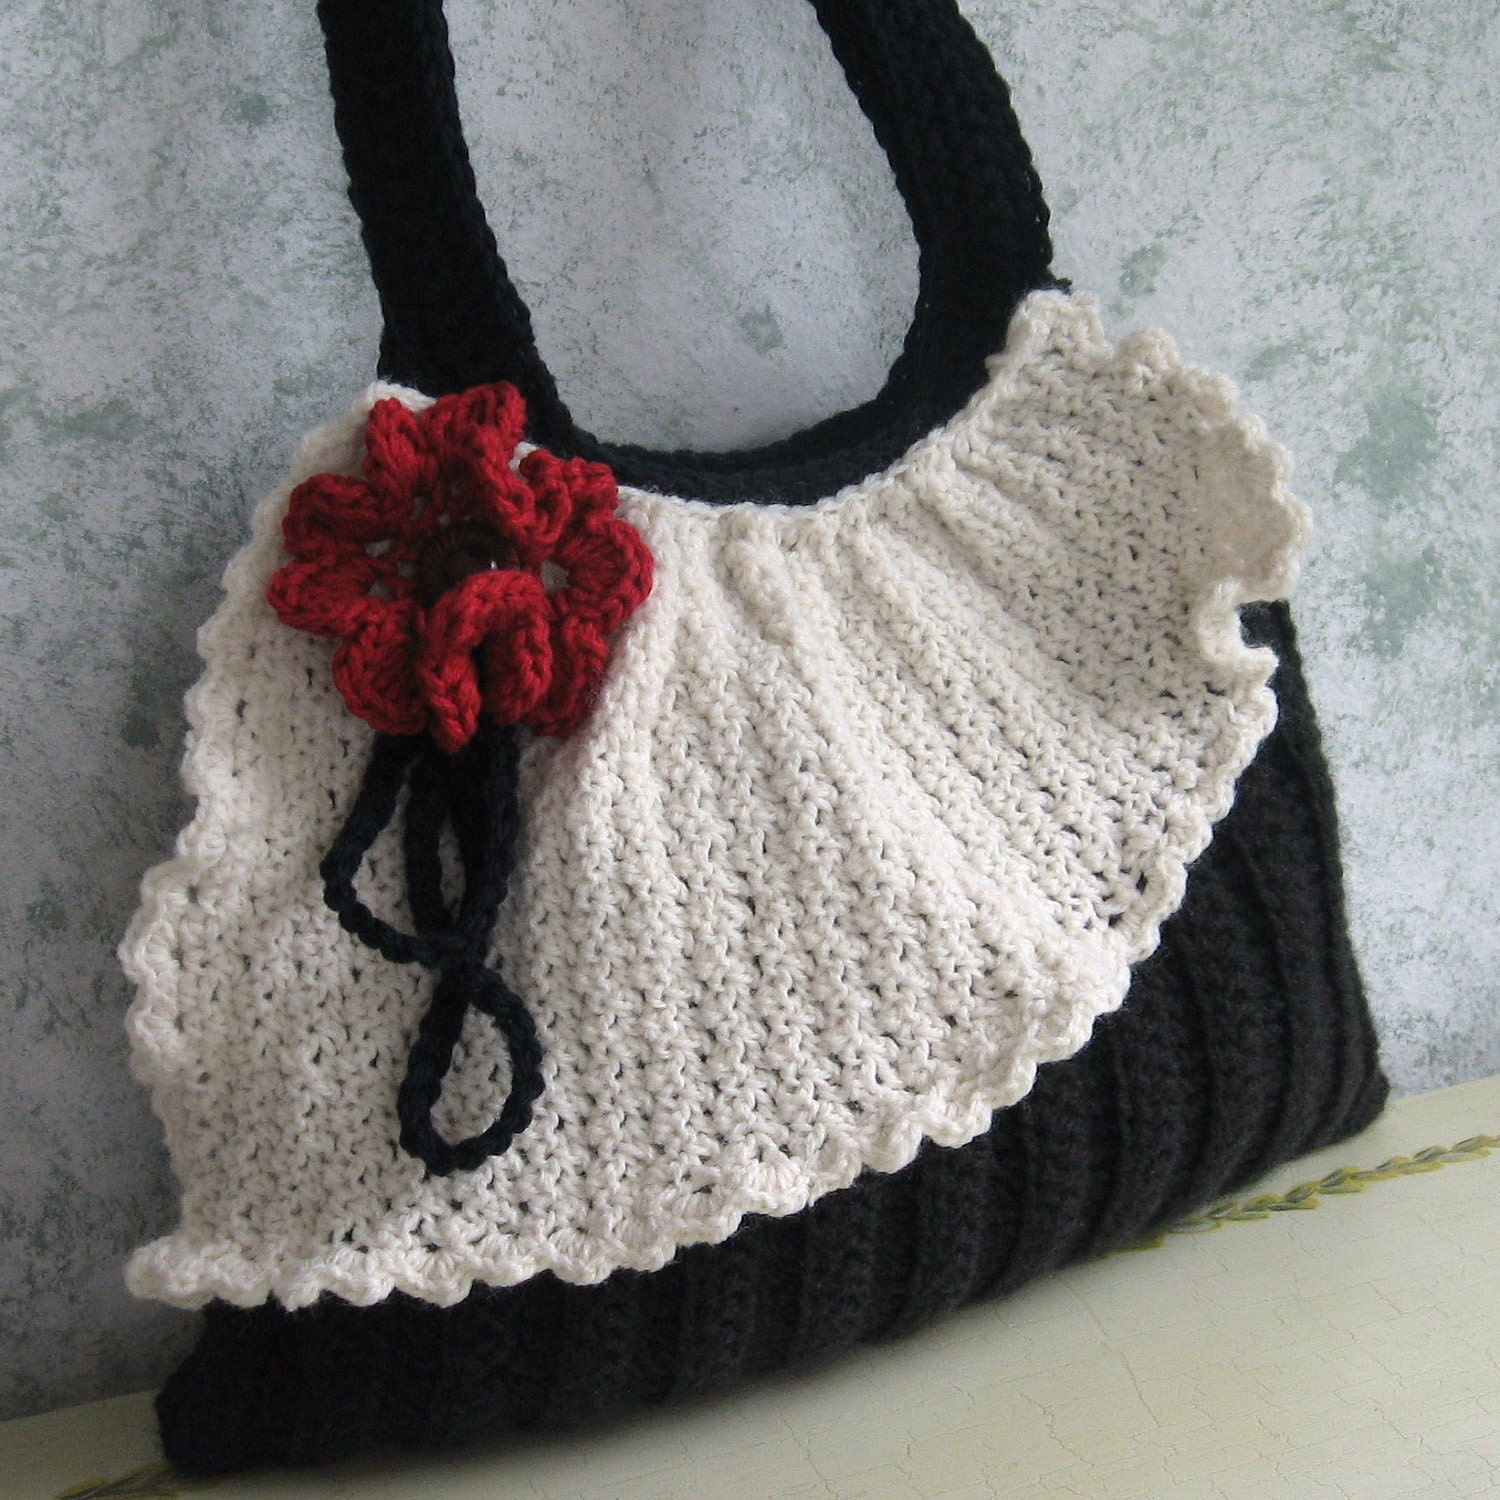 Crochet Bag Making : Crochet Purse Pattern Pleated Bag With Drape And by kalliedesigns